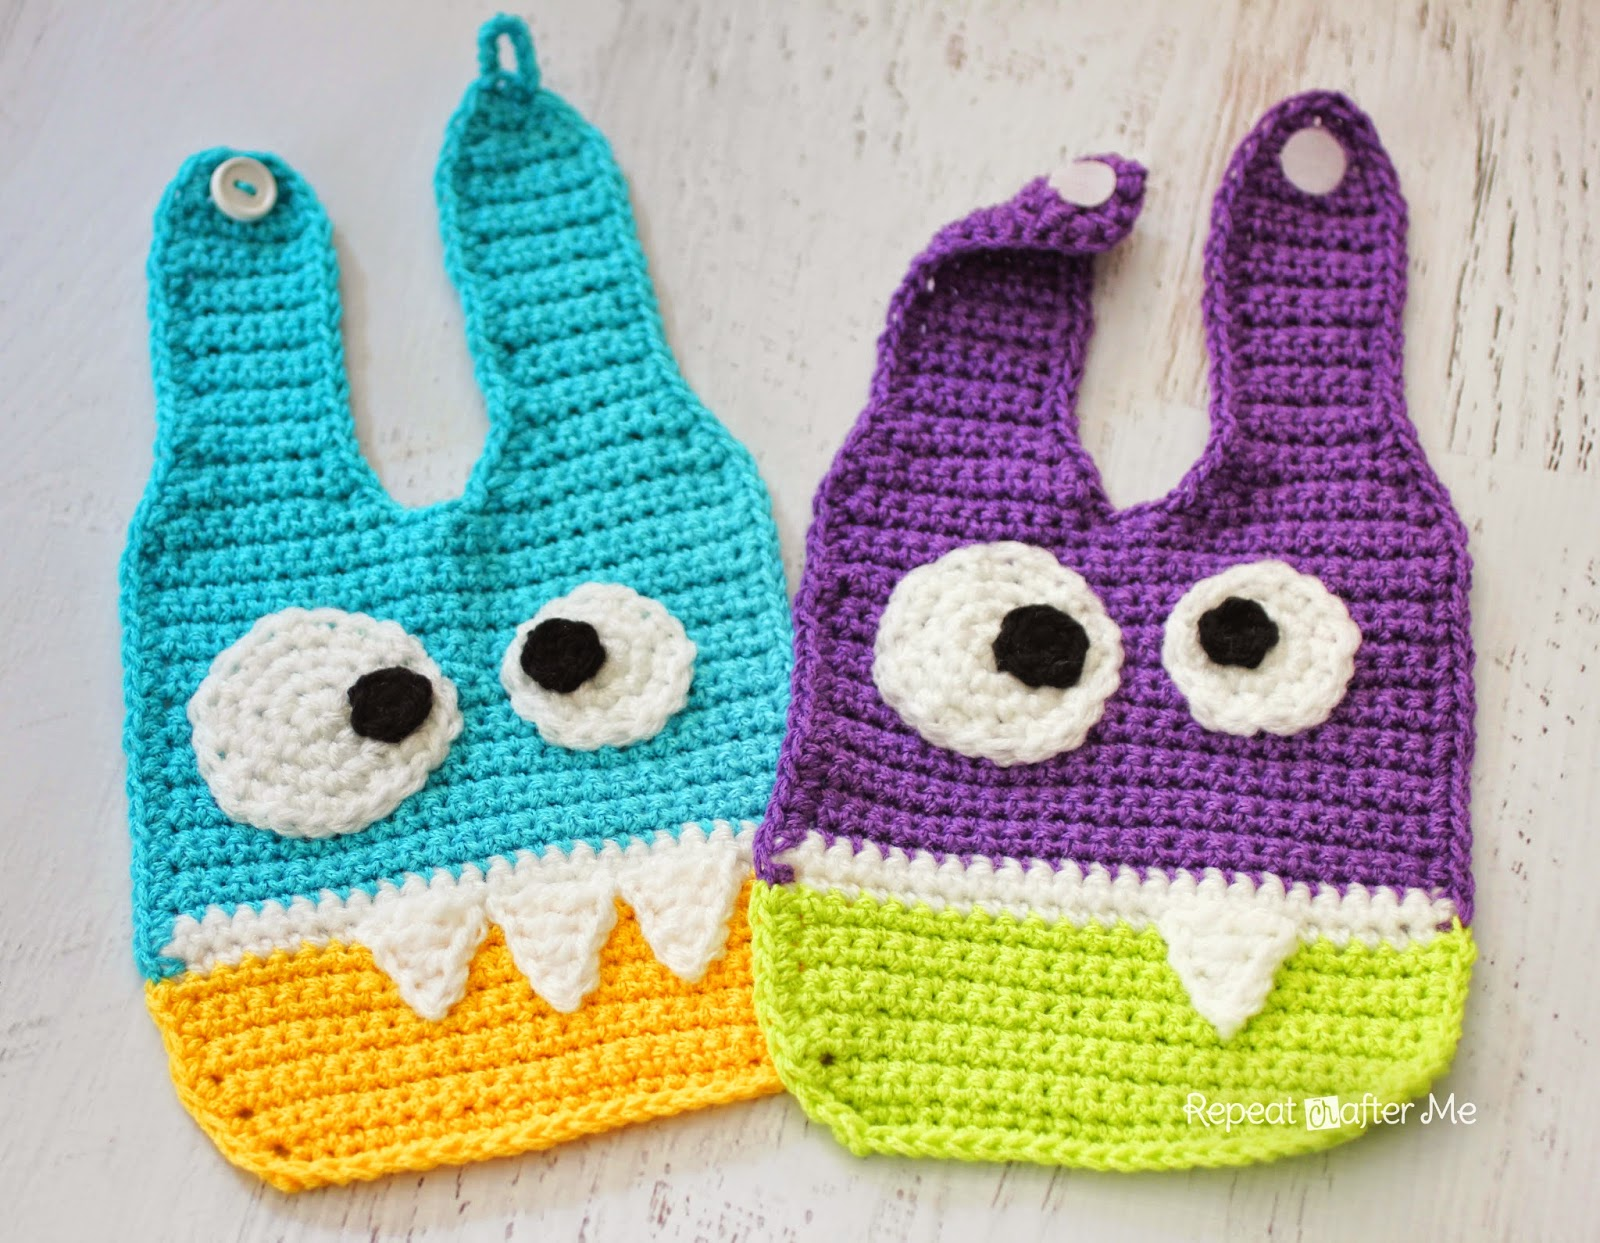 Crochet Monster Baby Bibs - Repeat Crafter Me